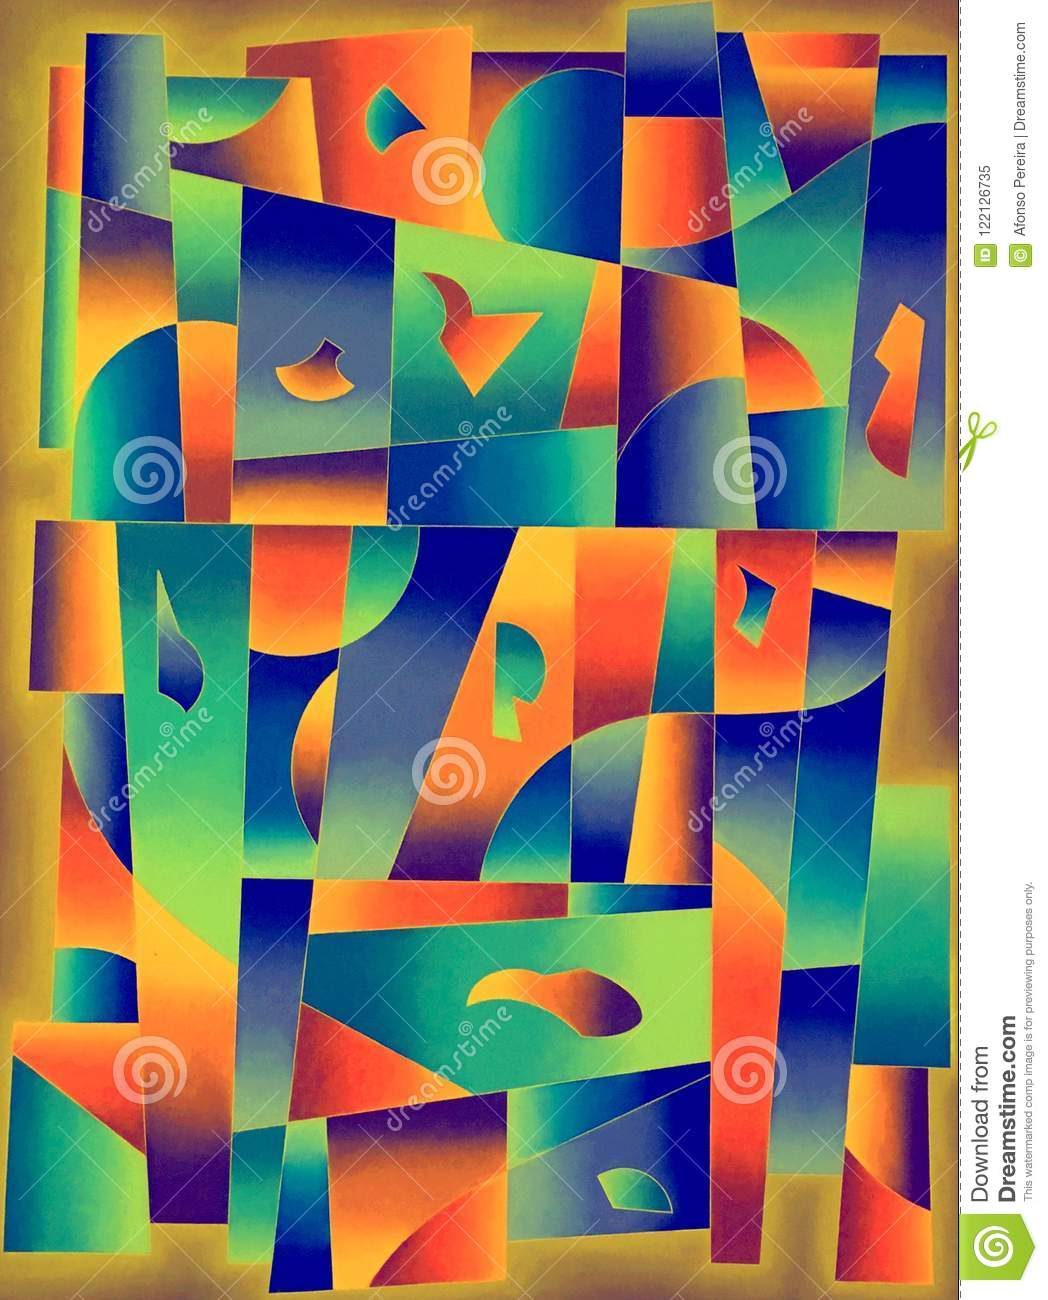 Colours Geometric Shapes Contemporary Art Stock Illustration